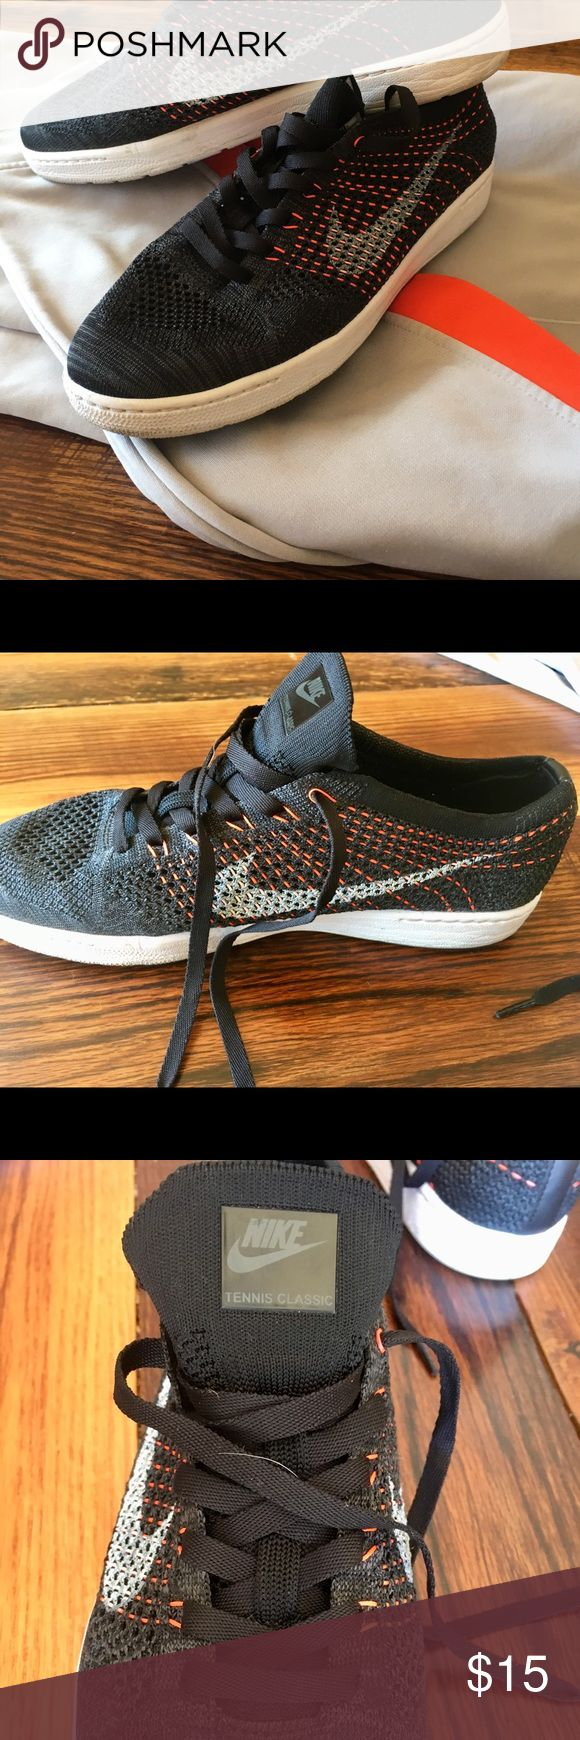 Men's Black Nike Sneakers Black material is like a mesh type good for the heat with orange accents barely worn in excellent condition great for spring training and summer weather tags - shoes running sports gym sneakers tennis shoes walking hiking exercise Nike Shoes Sneakers